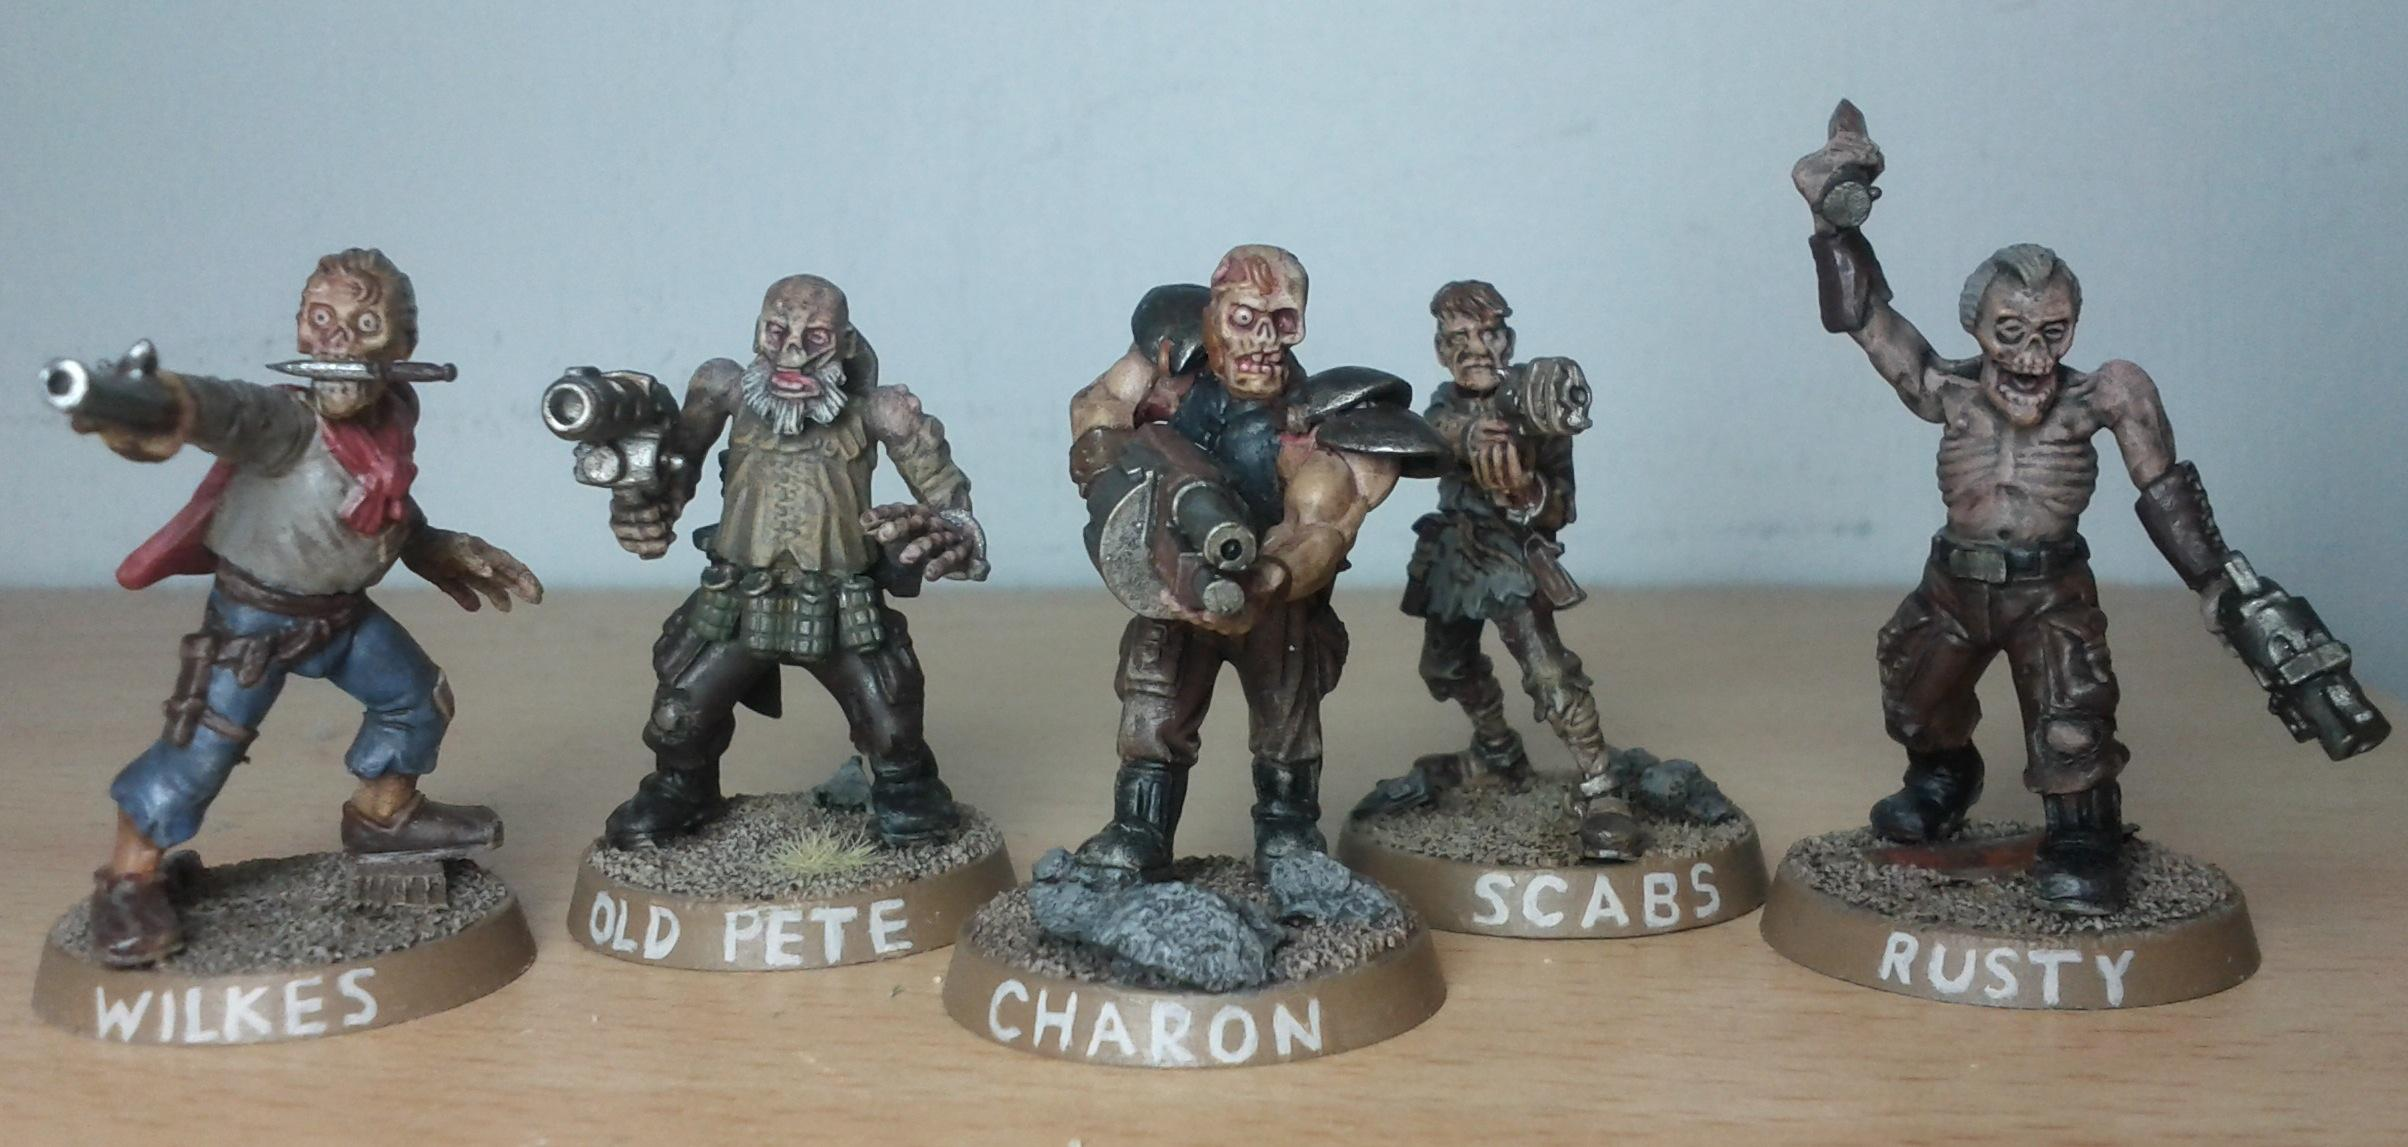 Charon, Fallout, Ghoul, Kitbash, Pete, Rusty, Waseland, Wilkes, Zombie